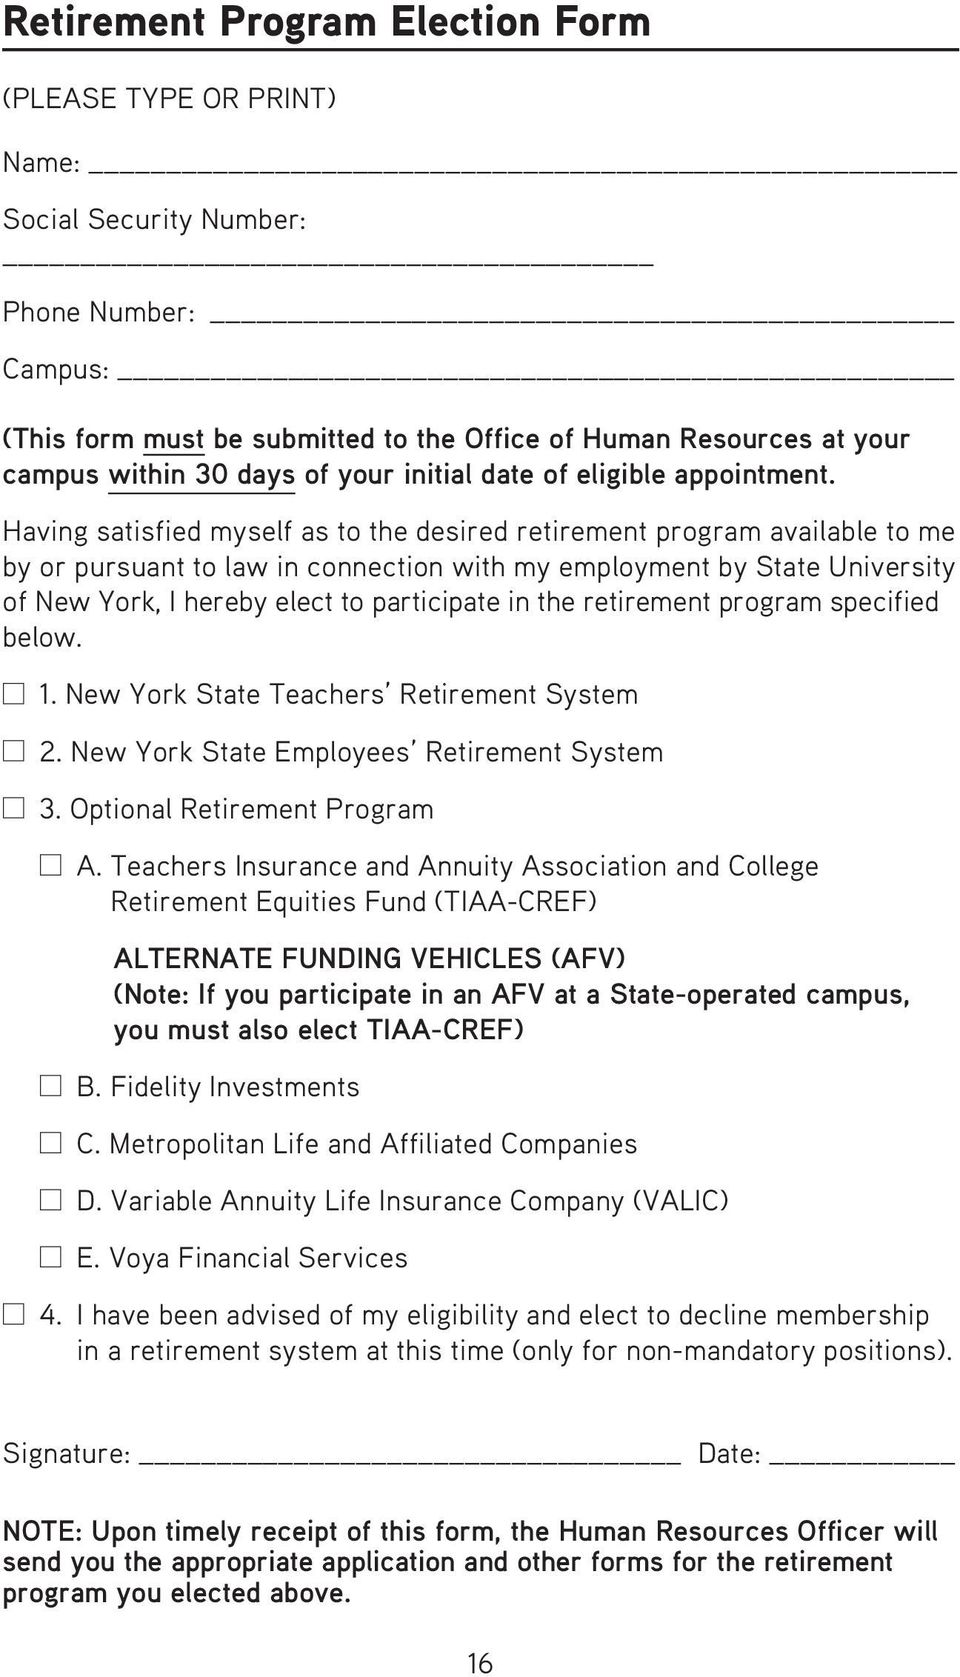 Having satisfied myself as to the desired retirement program available to me by or pursuant to law in connection with my employment by State University of New York, I hereby elect to participate in